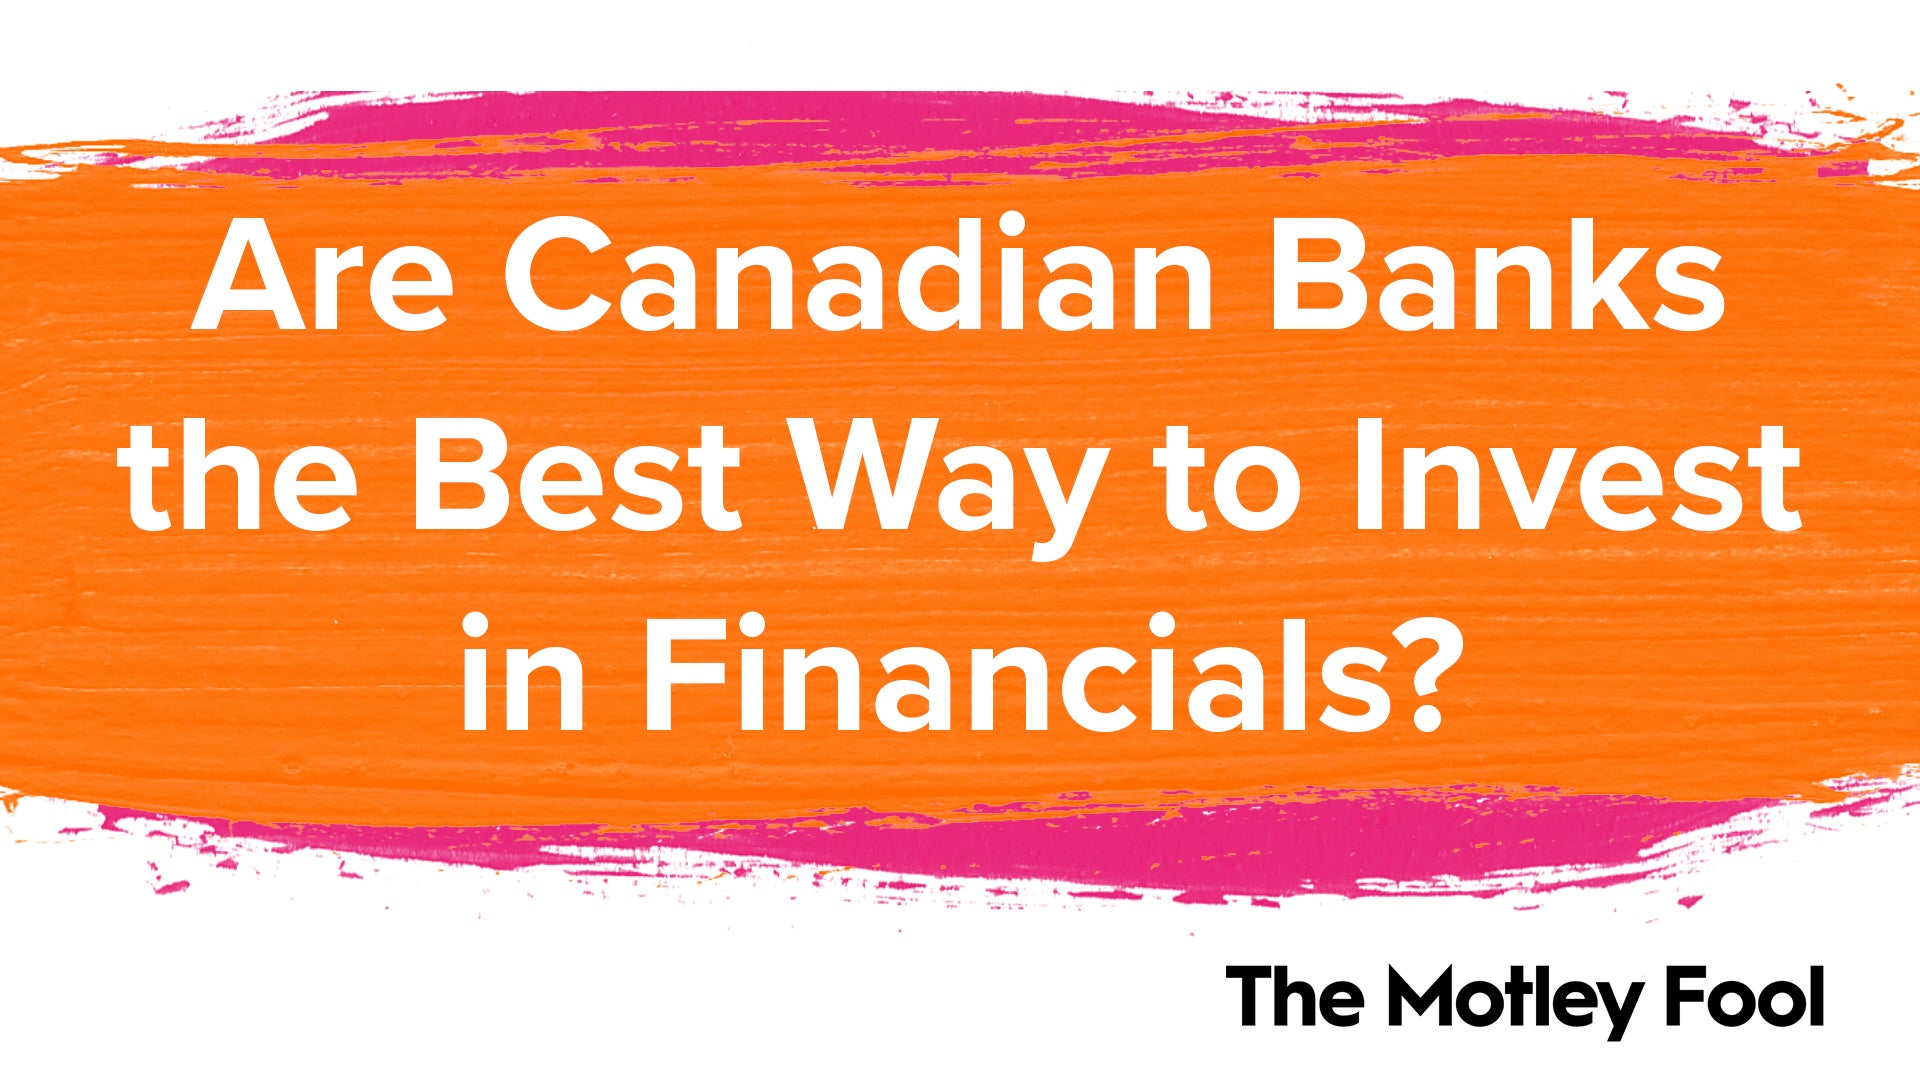 Are Canadian Banks the Best Way to Invest in Financials?